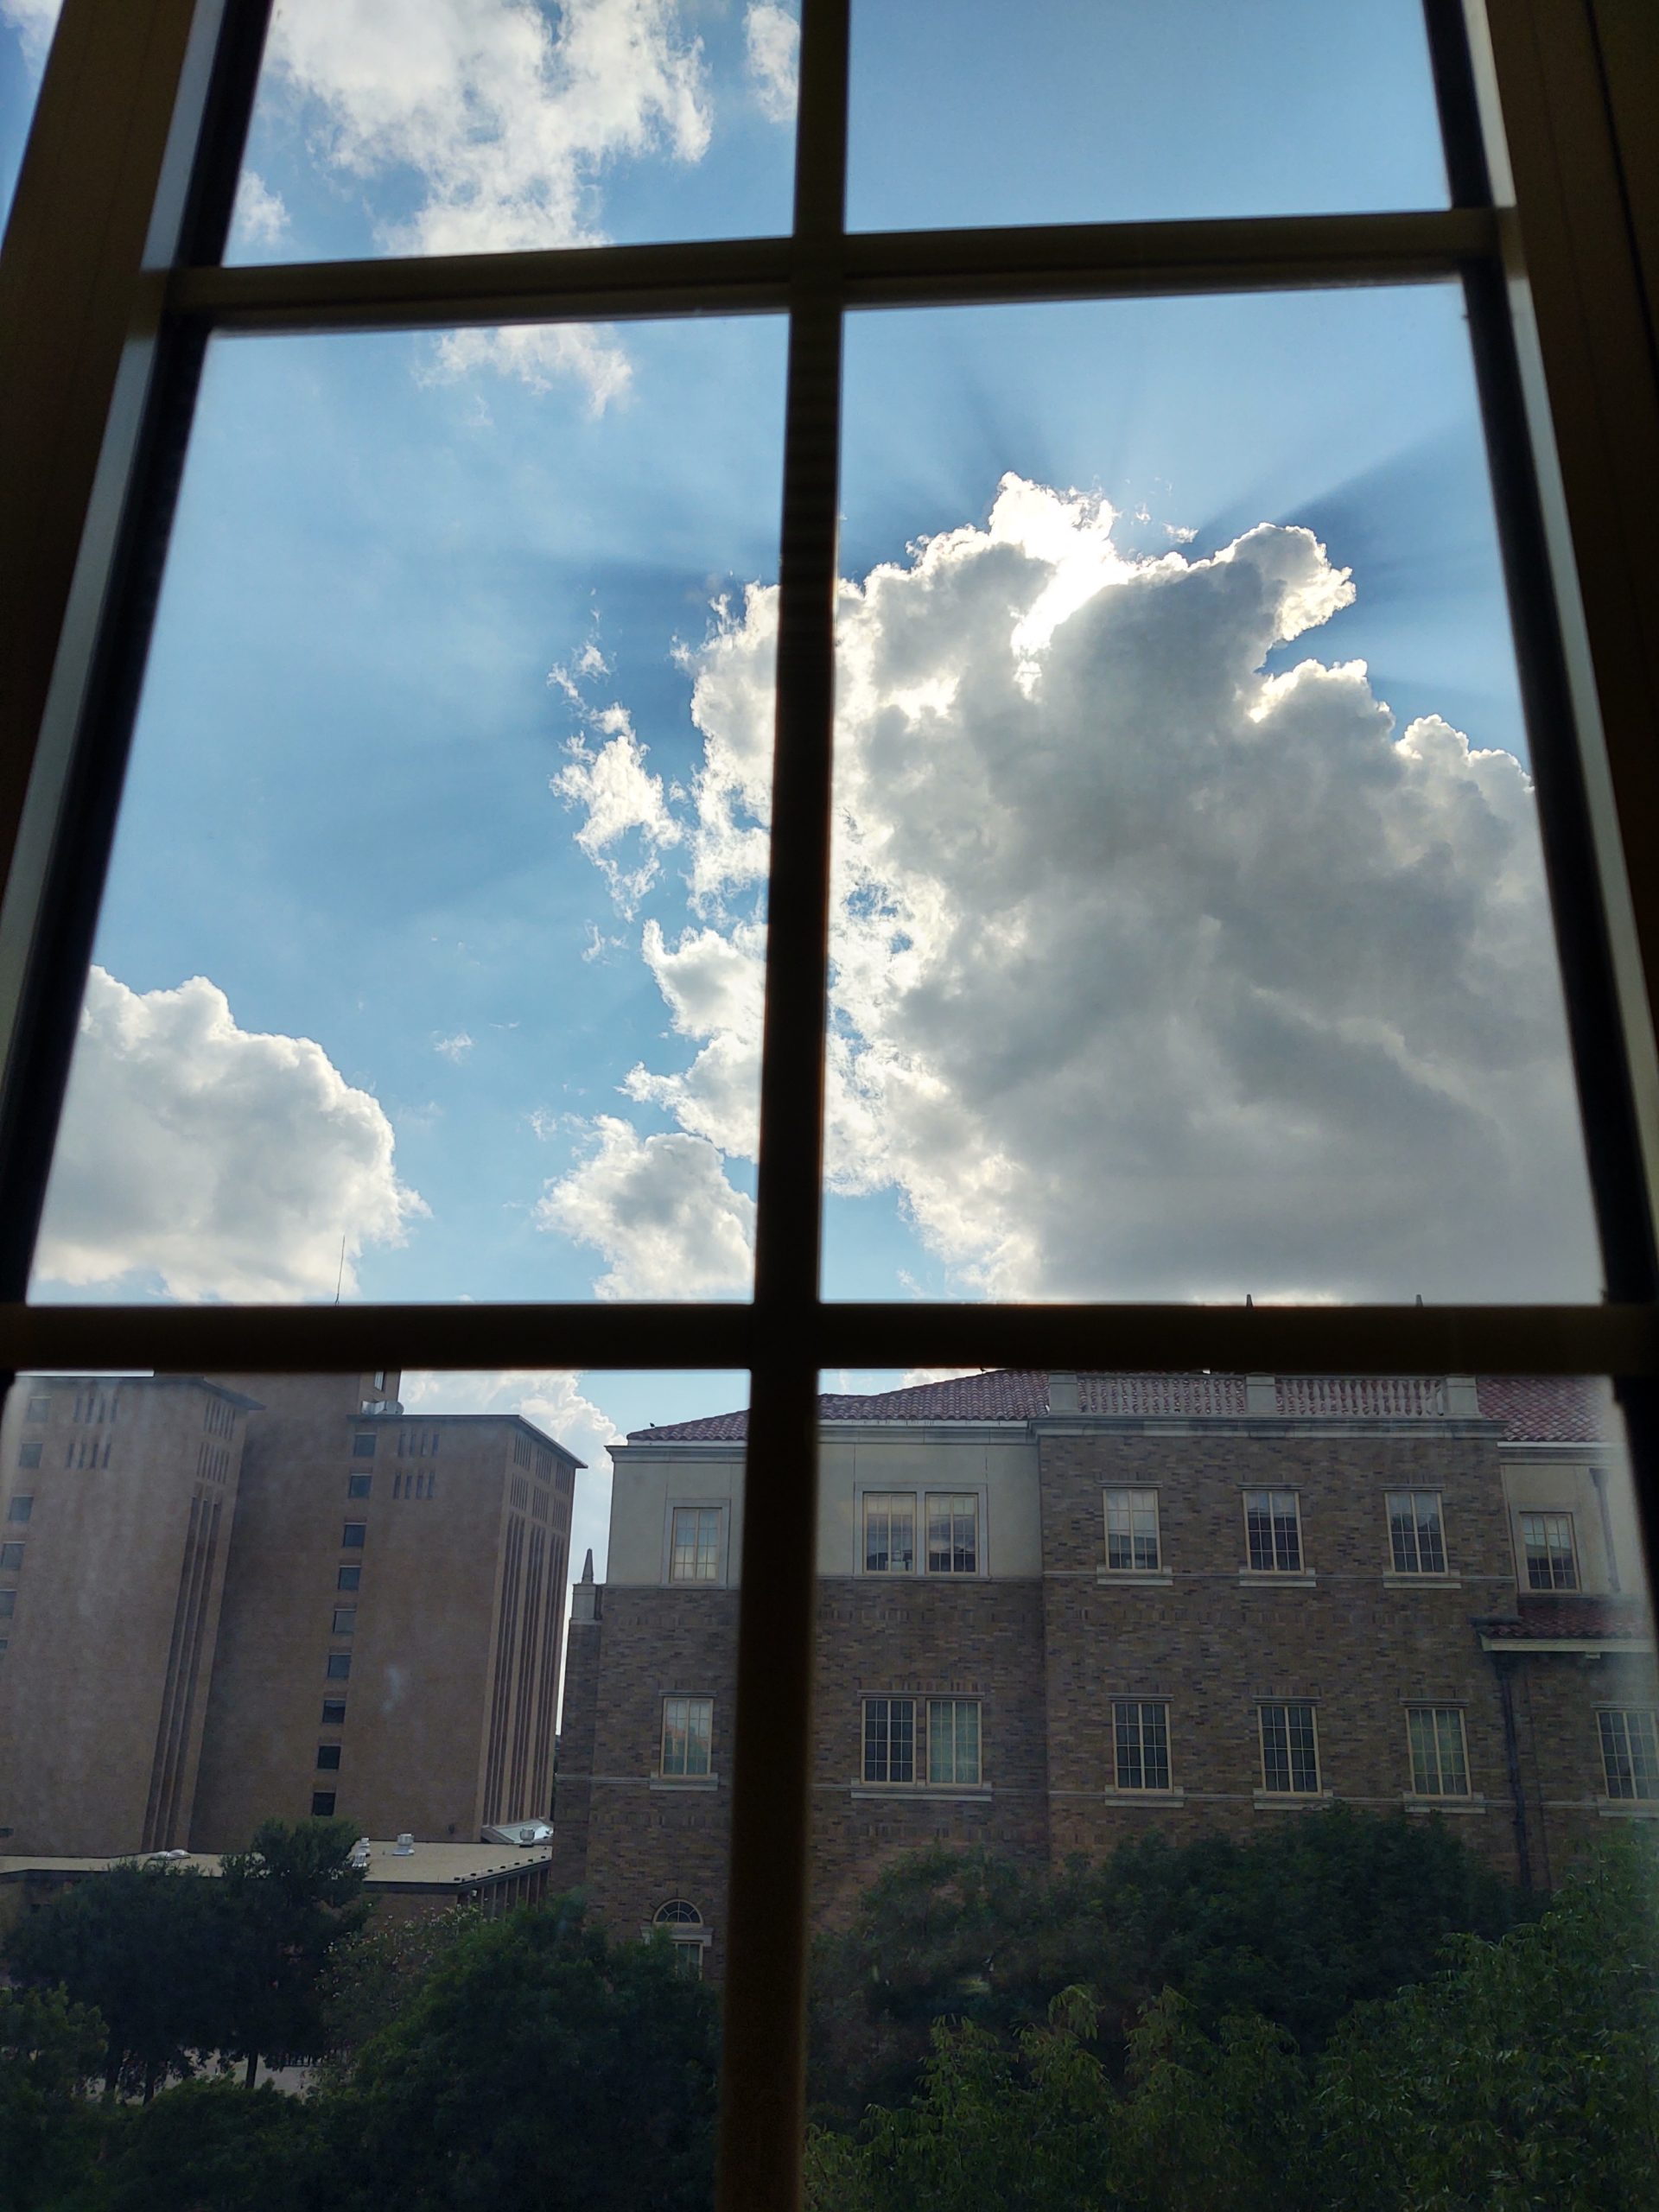 Picture is of sun shining from behind clouds with campus buildings and trees also visible below.